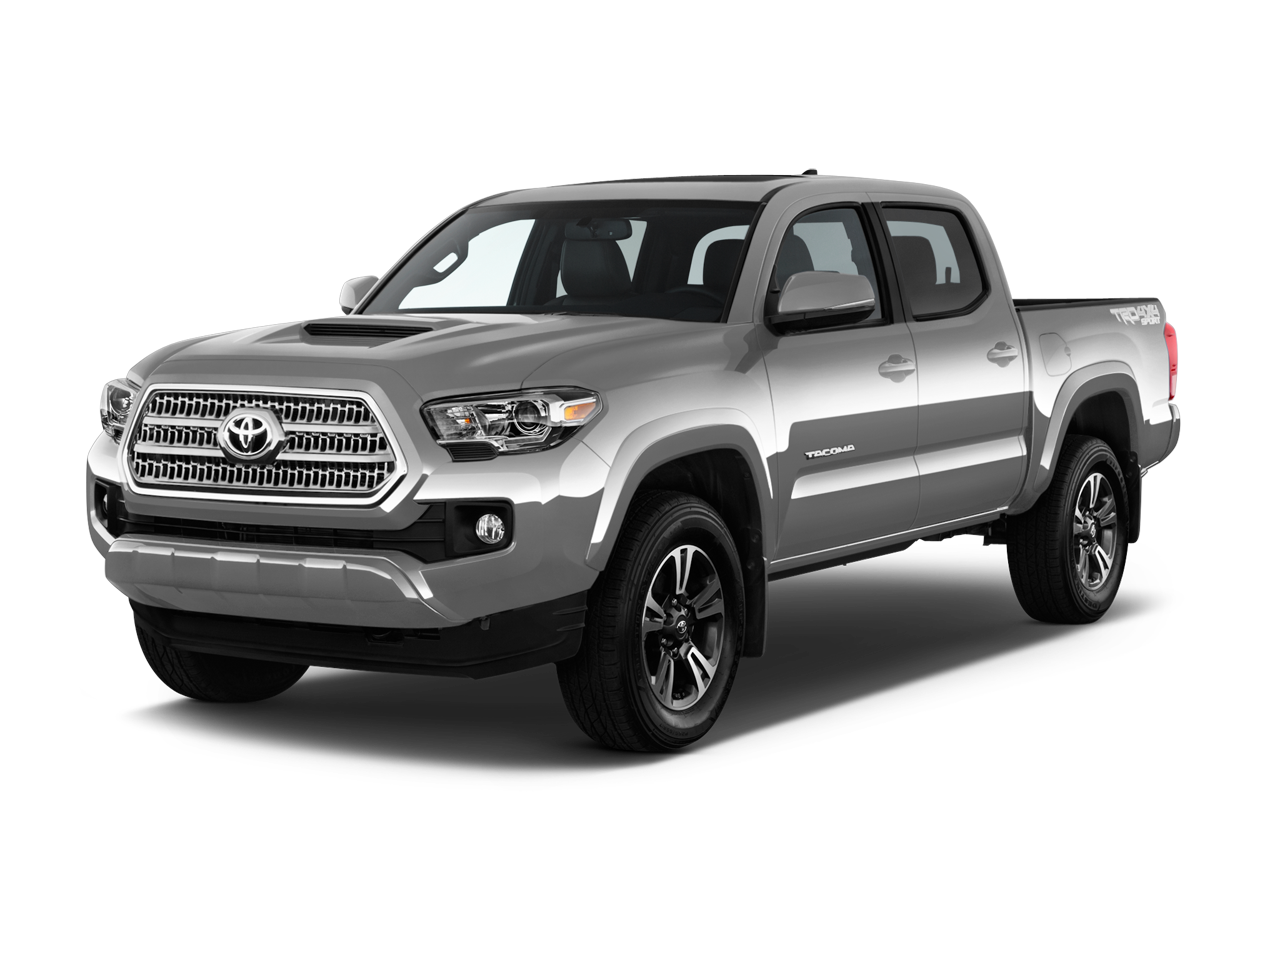 new 2017 toyota tacoma trd sport 4wd double cab near carson city nv carson city toyota. Black Bedroom Furniture Sets. Home Design Ideas